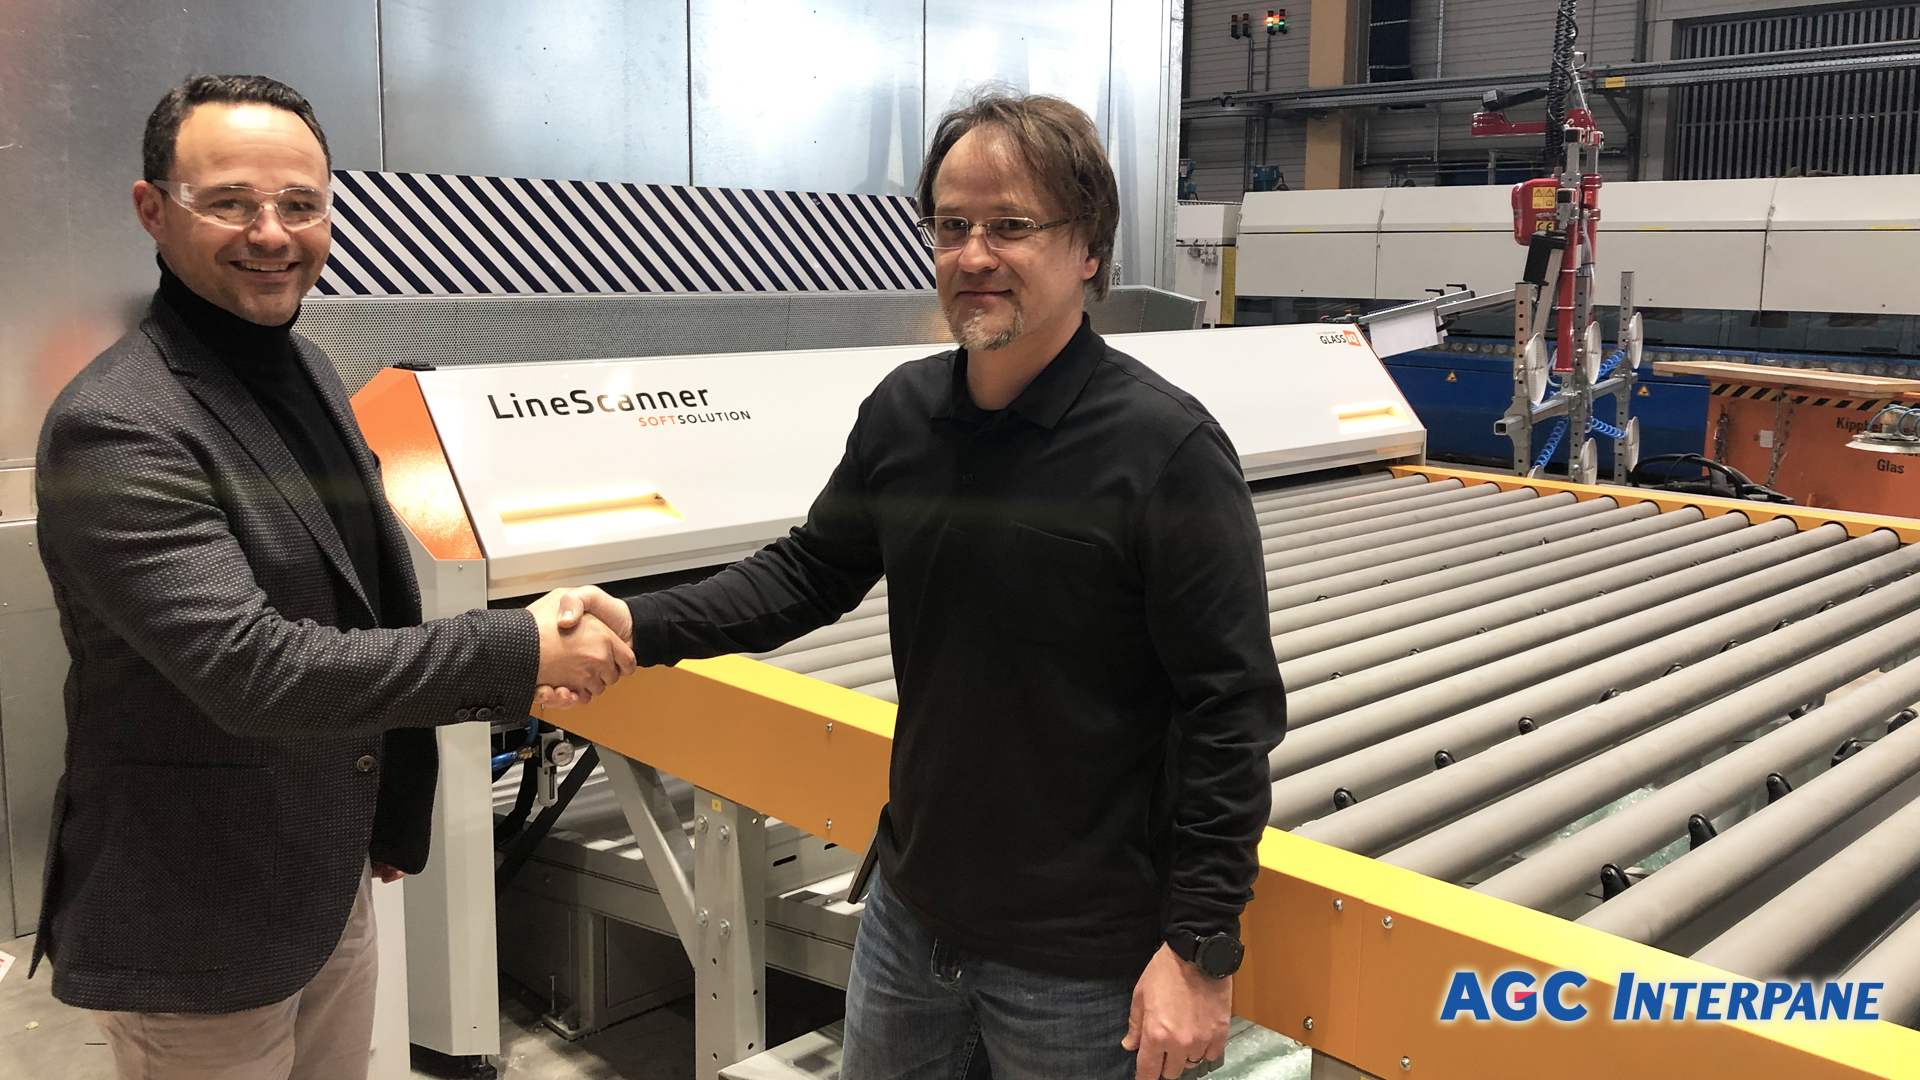 AGC-Interpane Plattling relies on LineScanner for anisotropy testing by SOFTSOLUTION